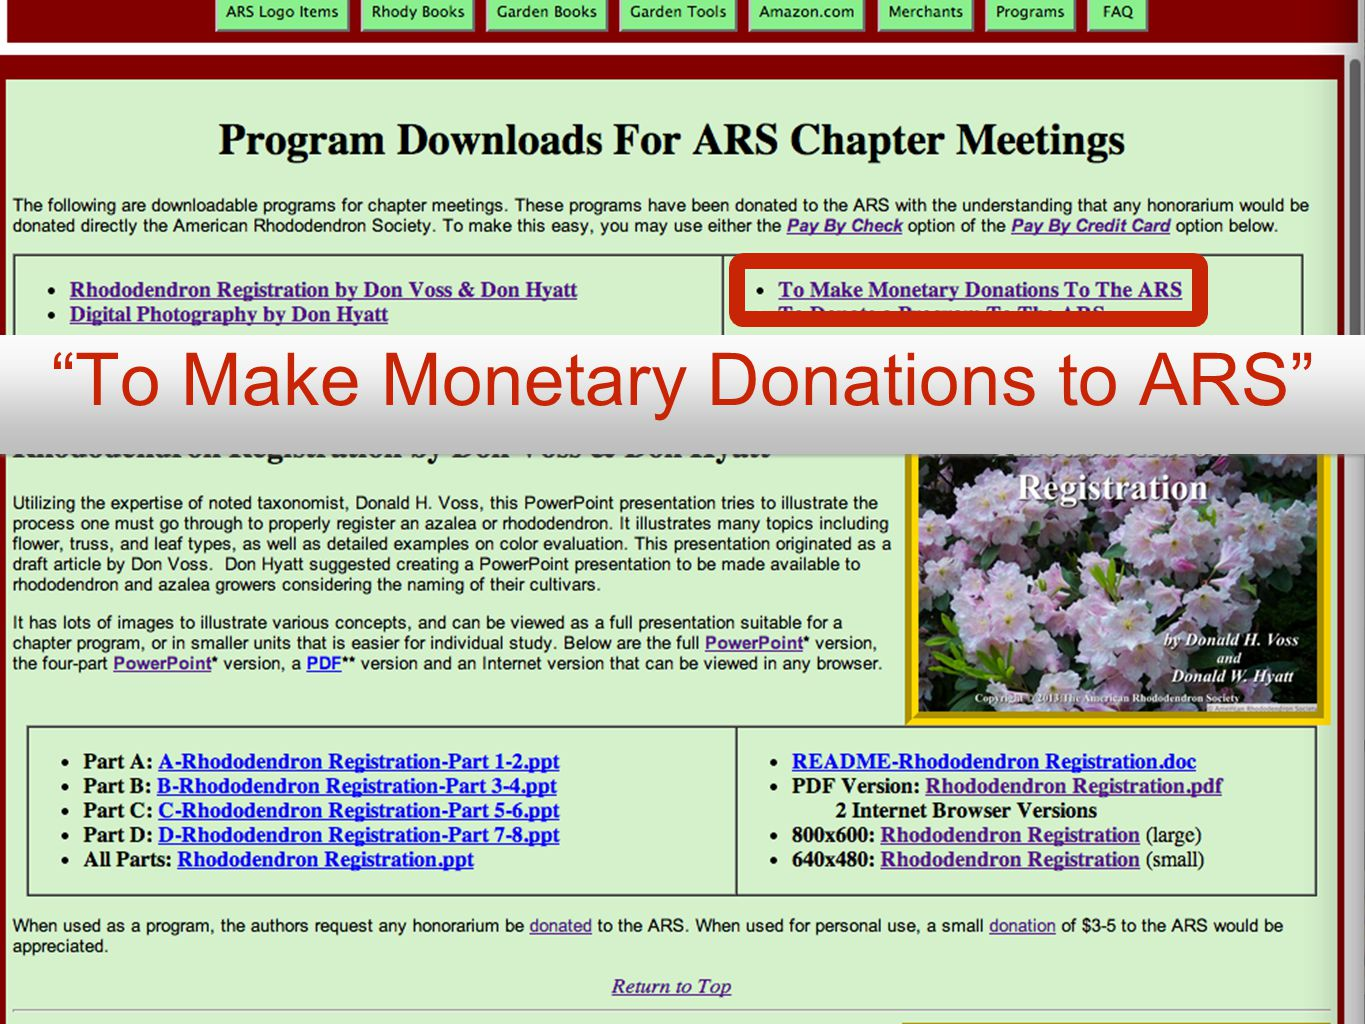 To Make Monetary Donations to ARS